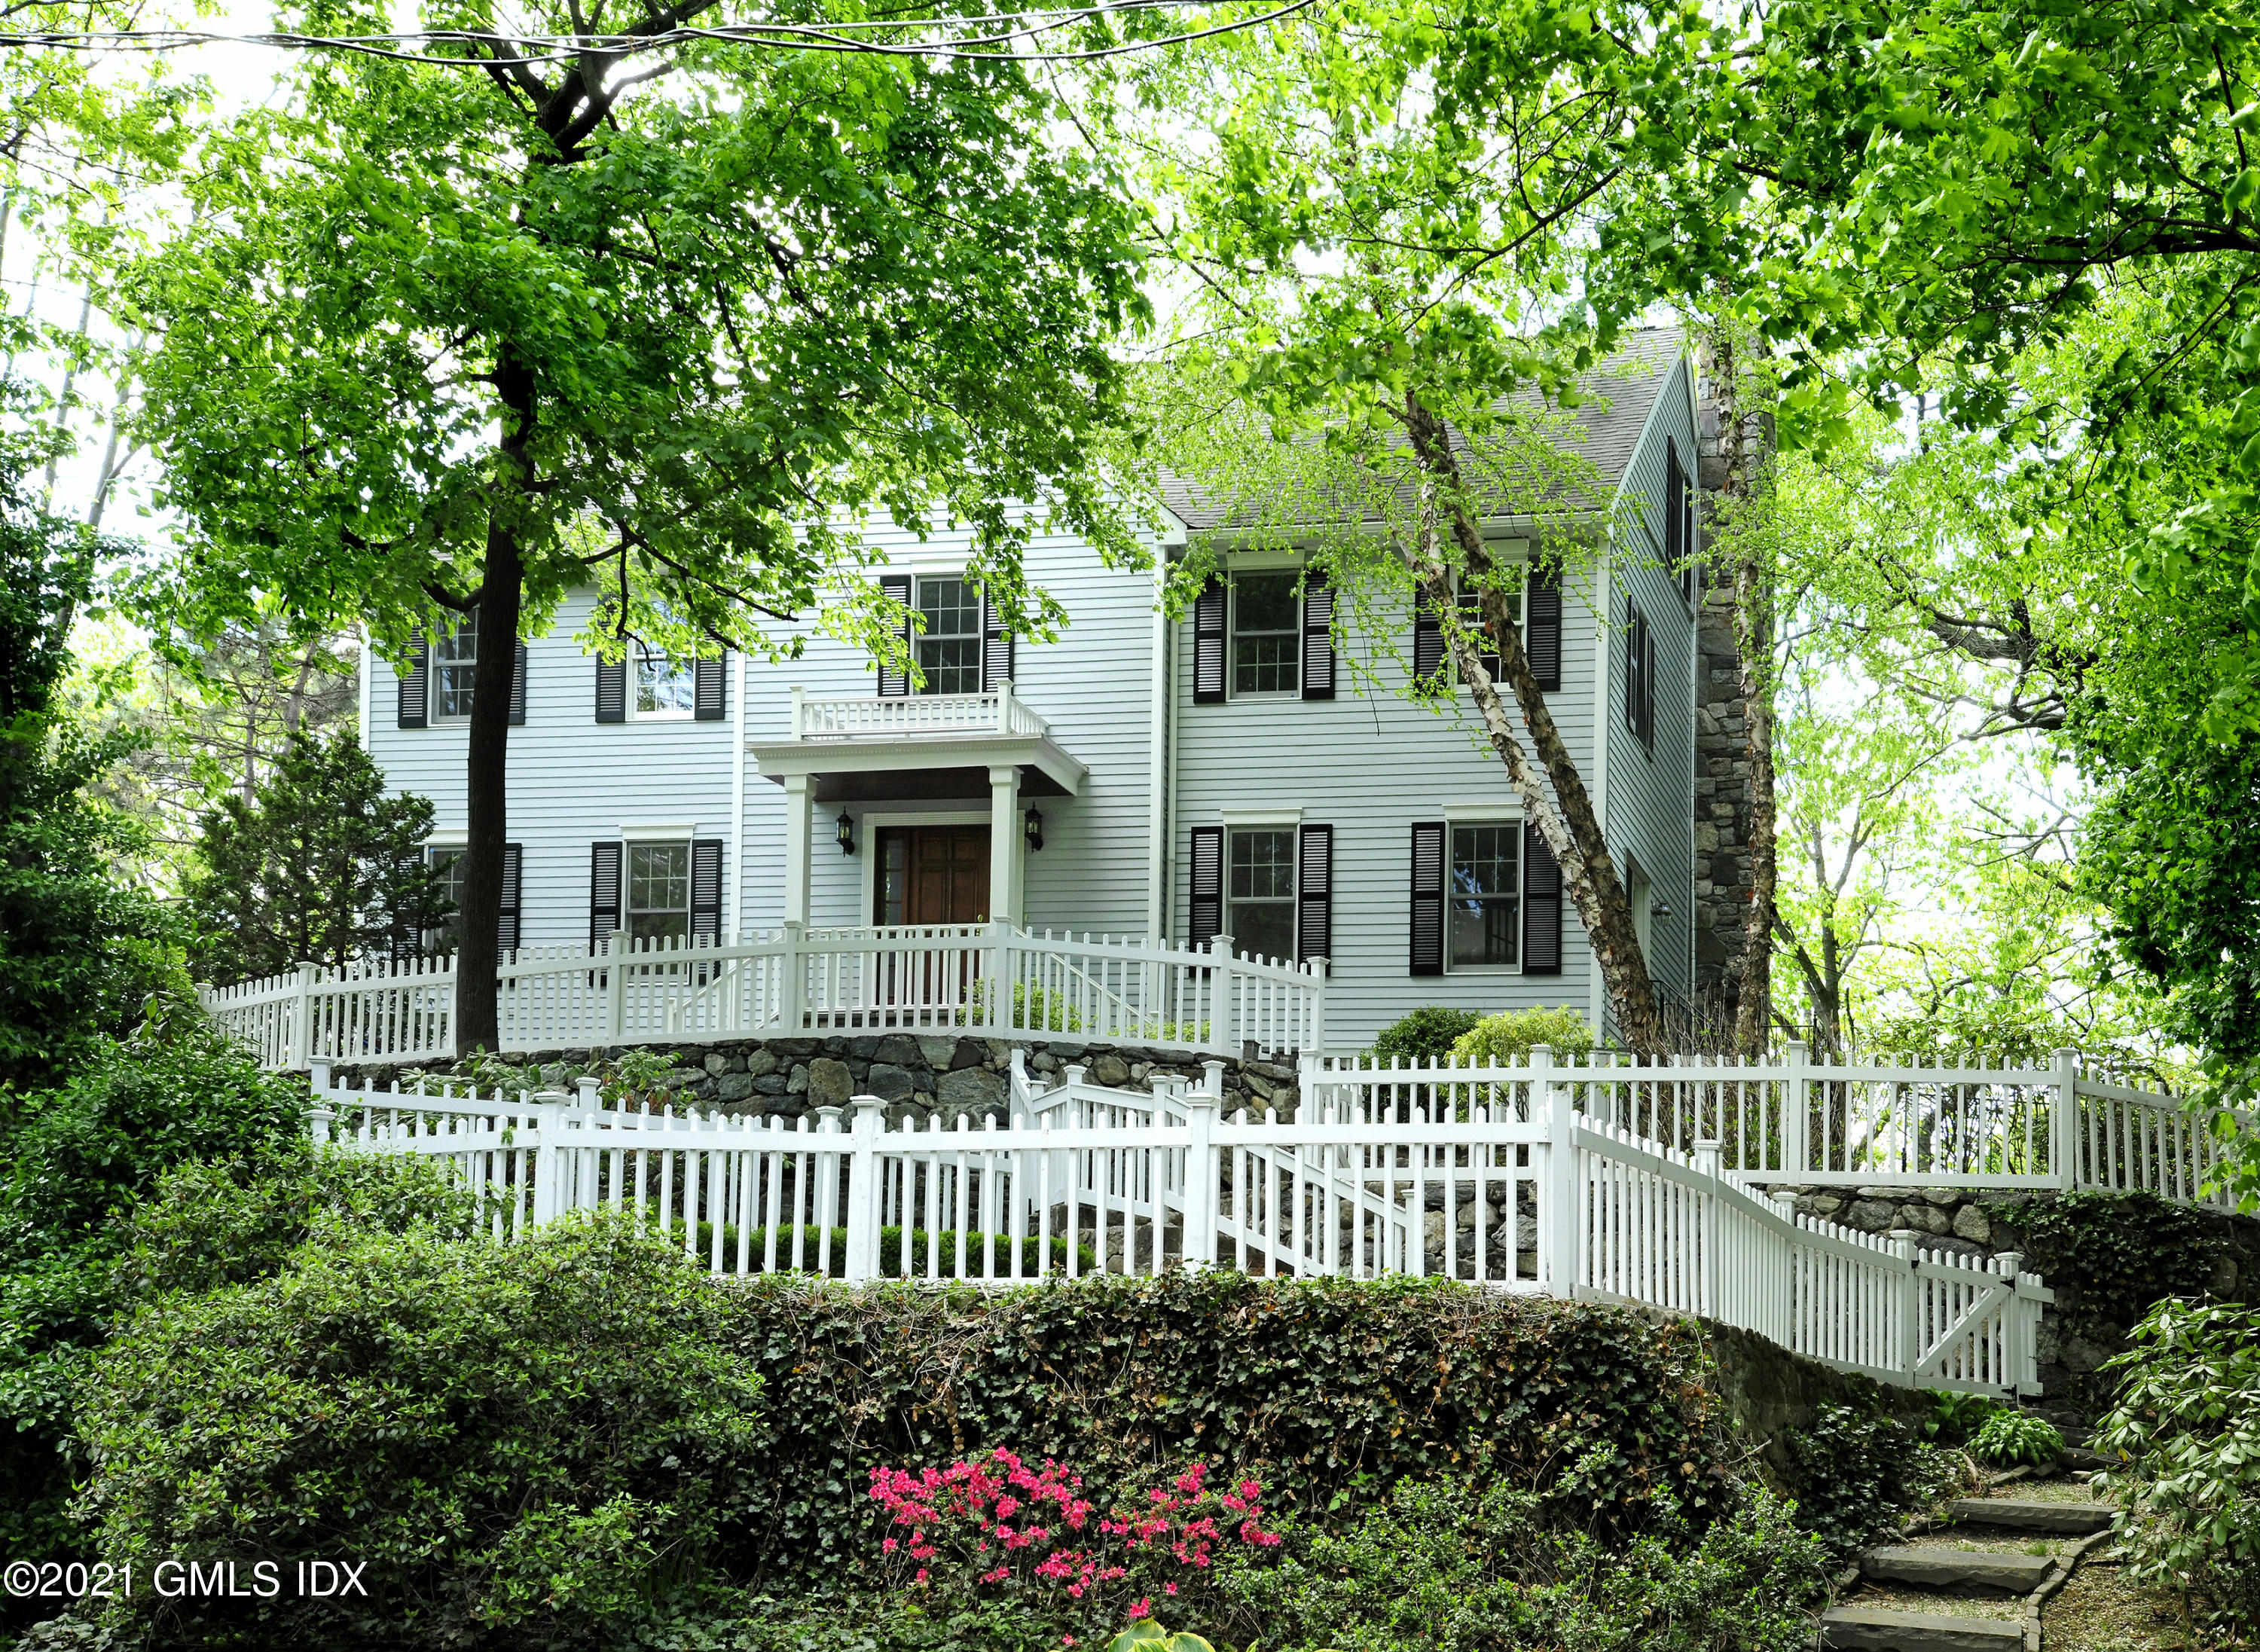 80 Indian Harbor Drive, Greenwich, Connecticut 06830, 5 Bedrooms Bedrooms, ,3 BathroomsBathrooms,Single family,For sale,Indian Harbor,112209